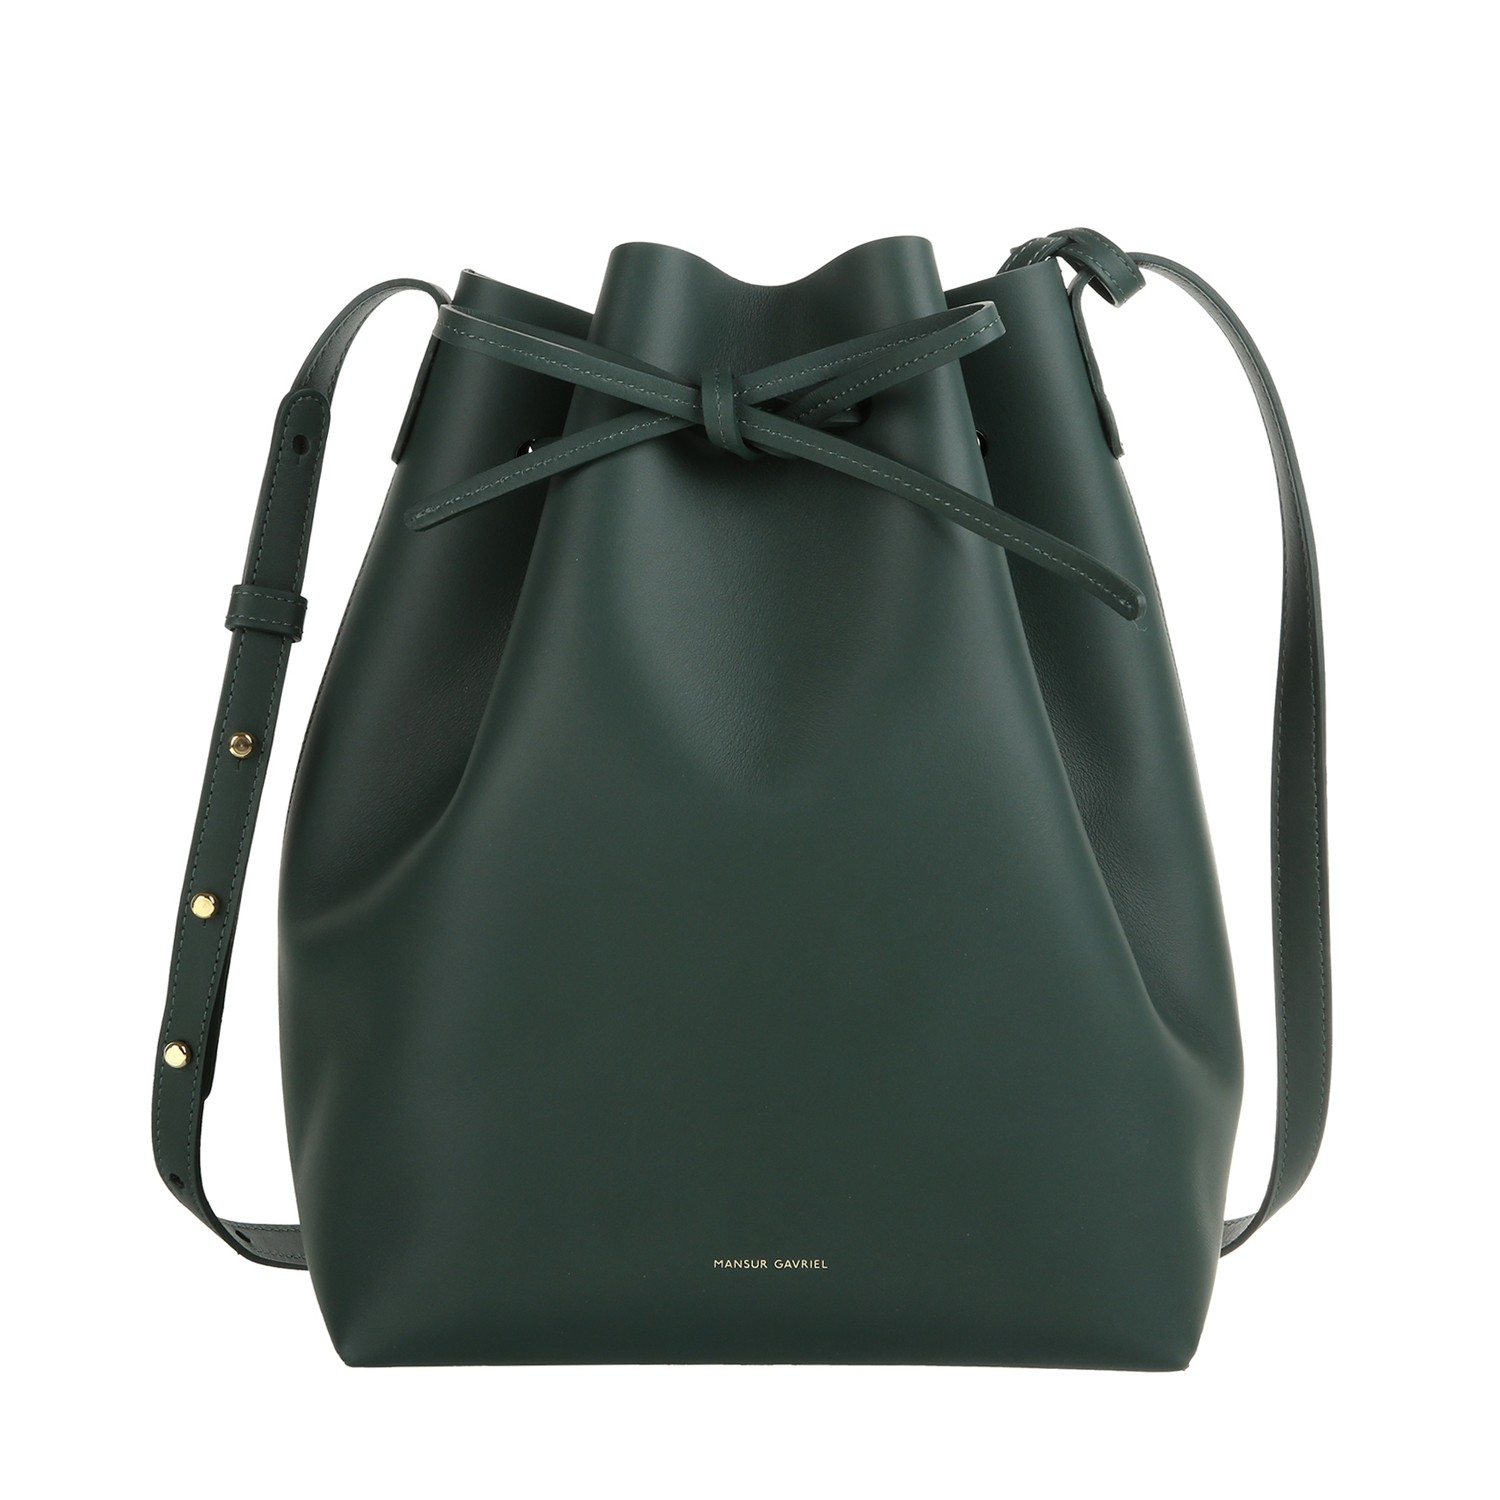 mansur gavriel bucket bag in green lyst. Black Bedroom Furniture Sets. Home Design Ideas